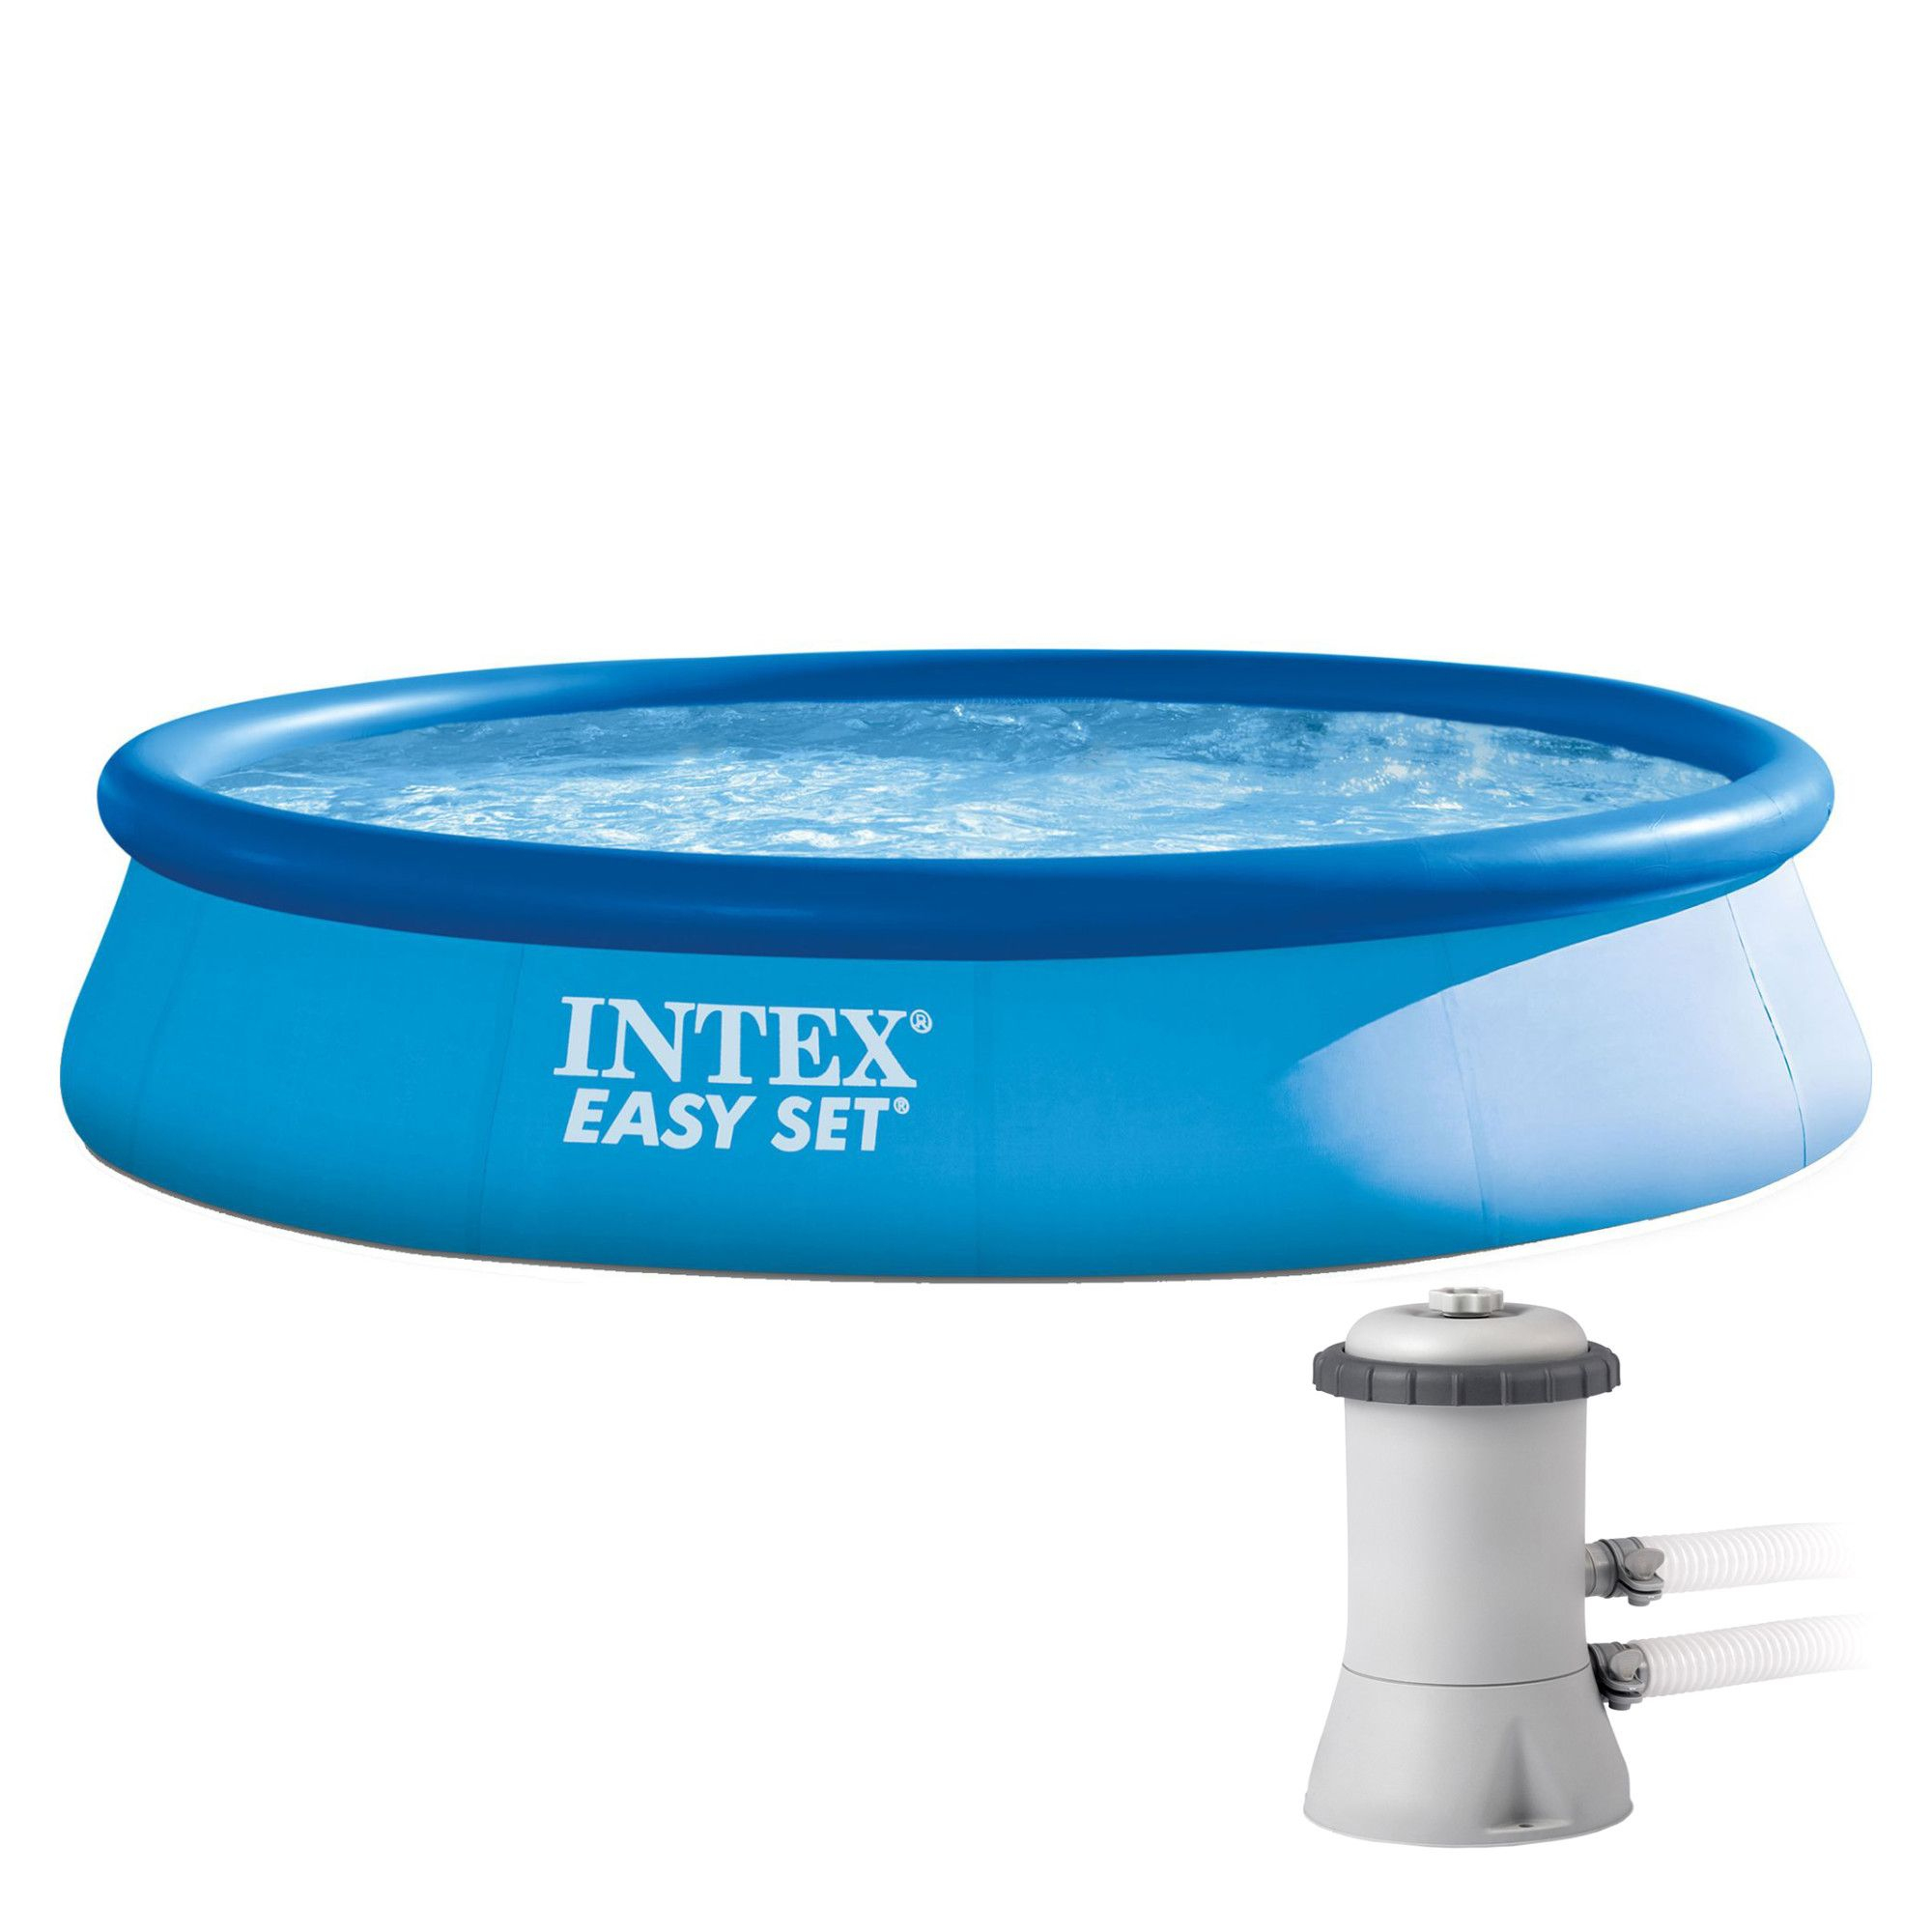 Piscina Intex Easy Set Pentru Copii, 3.96M X 84Cm serapportantà Piscine Intex 3.66